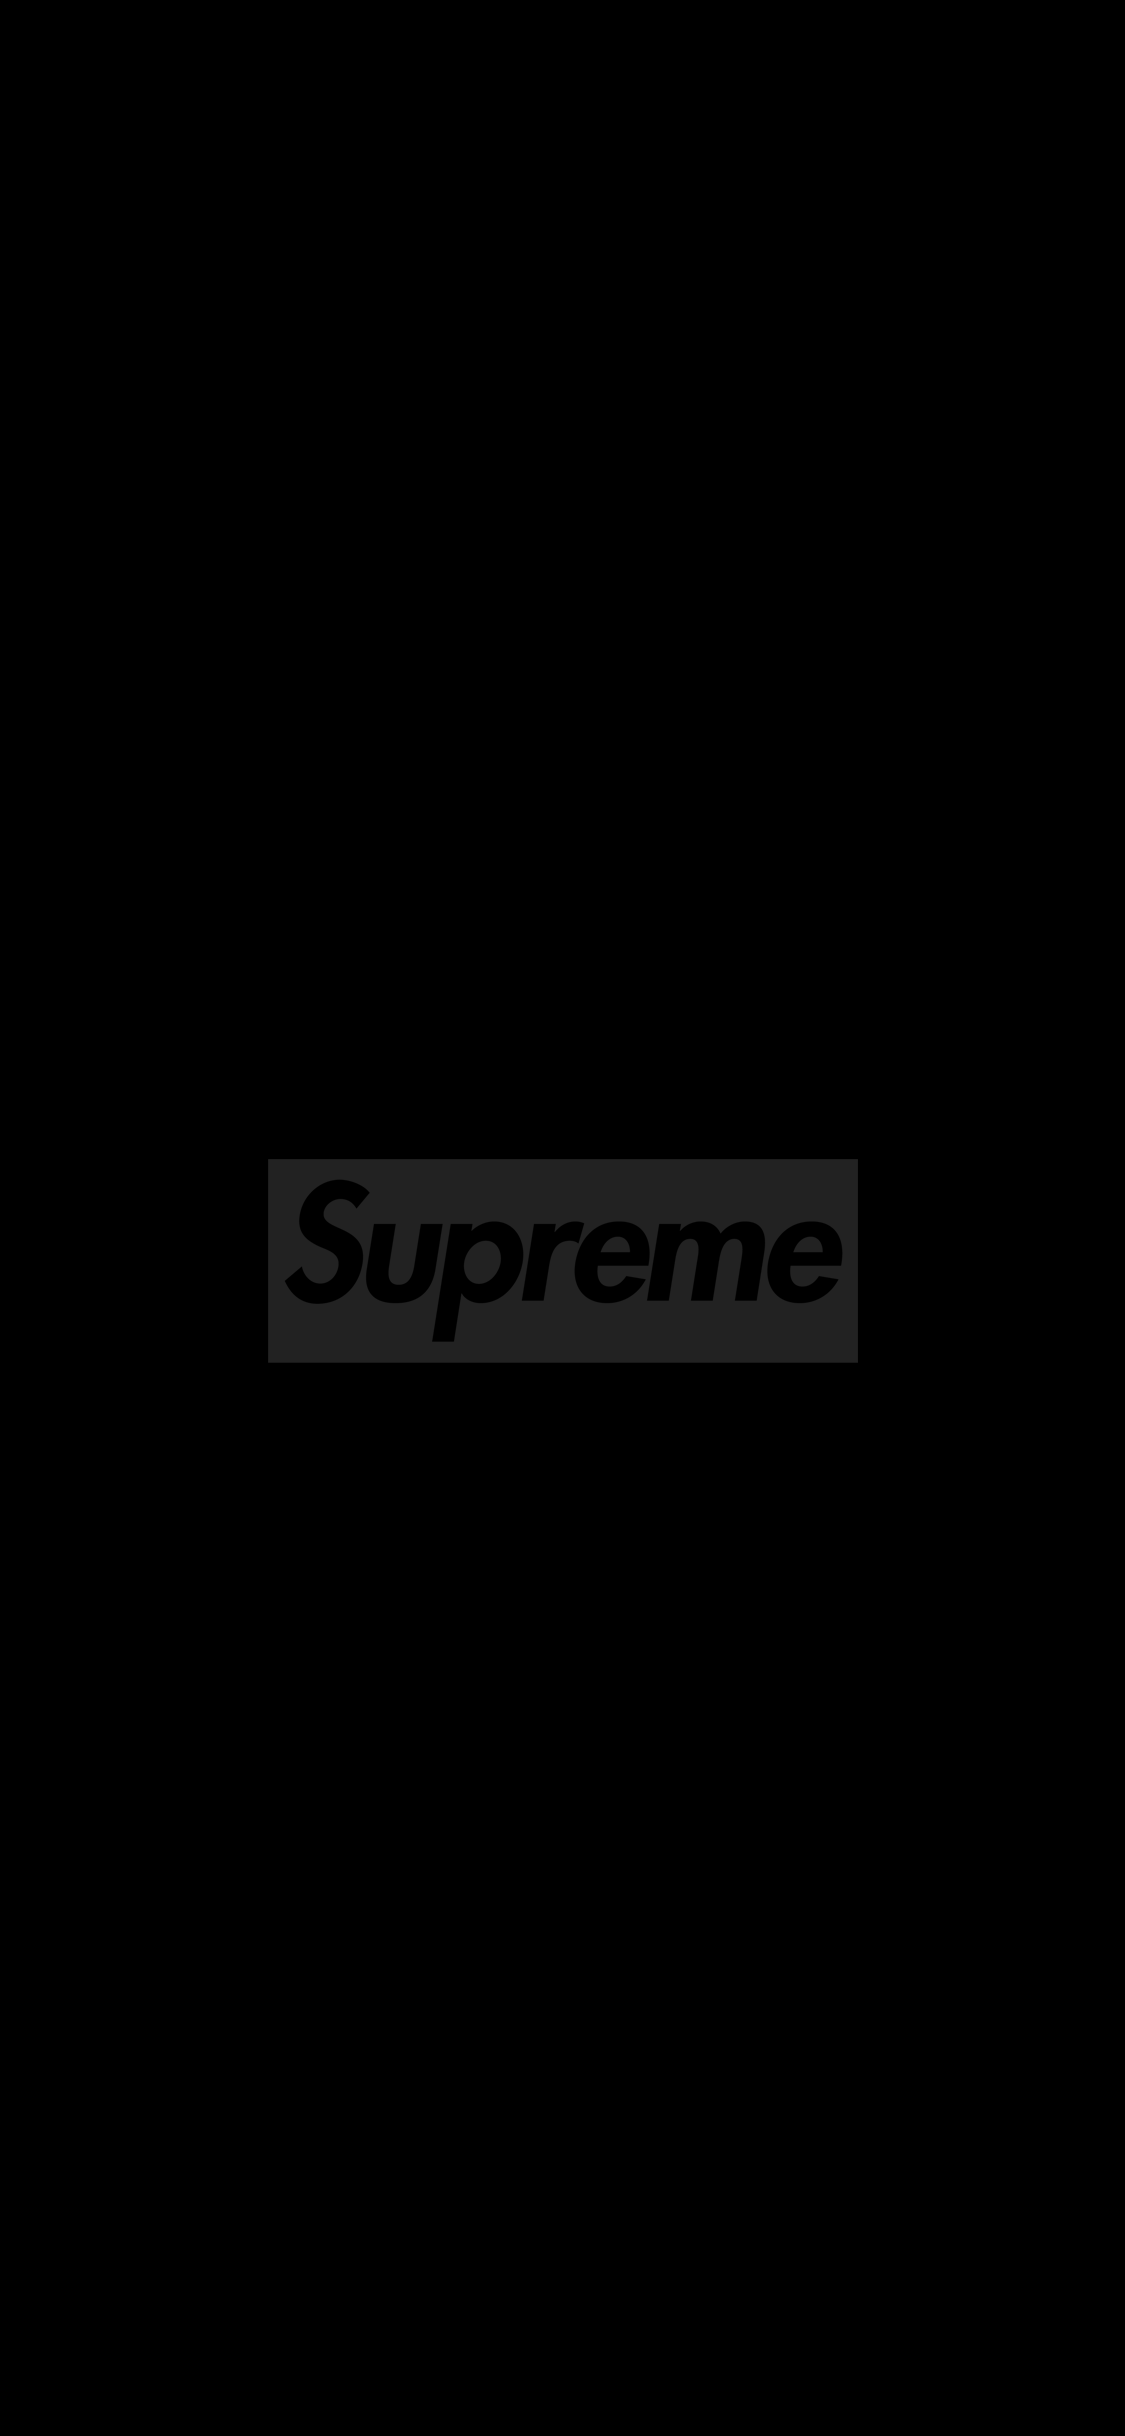 Black Supreme Wallpaper Posted By Christopher Johnson